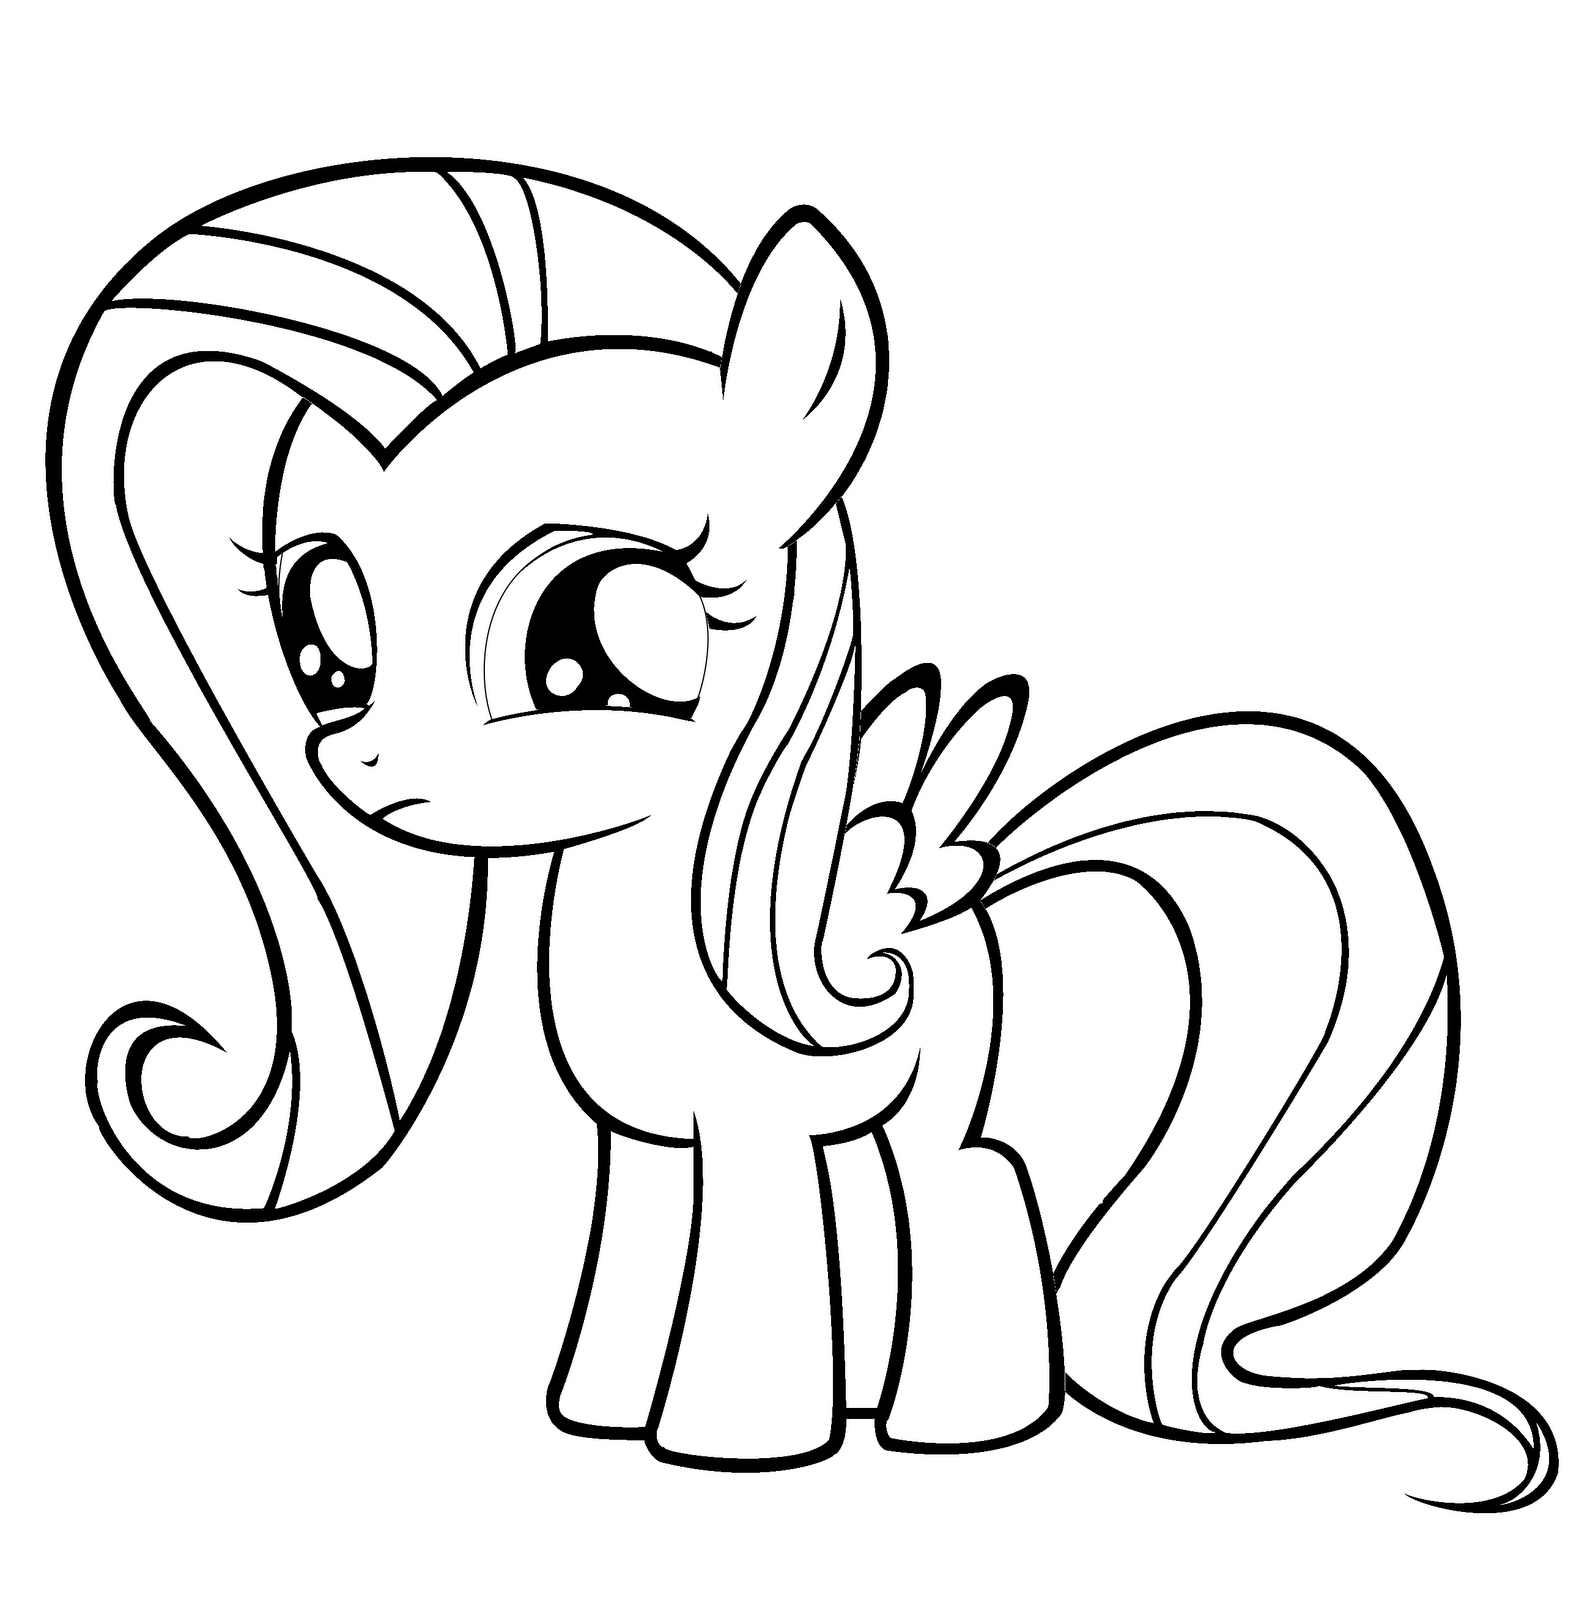 my little pony print and colour my little pony coloring pages print and colorcom print my little and pony colour